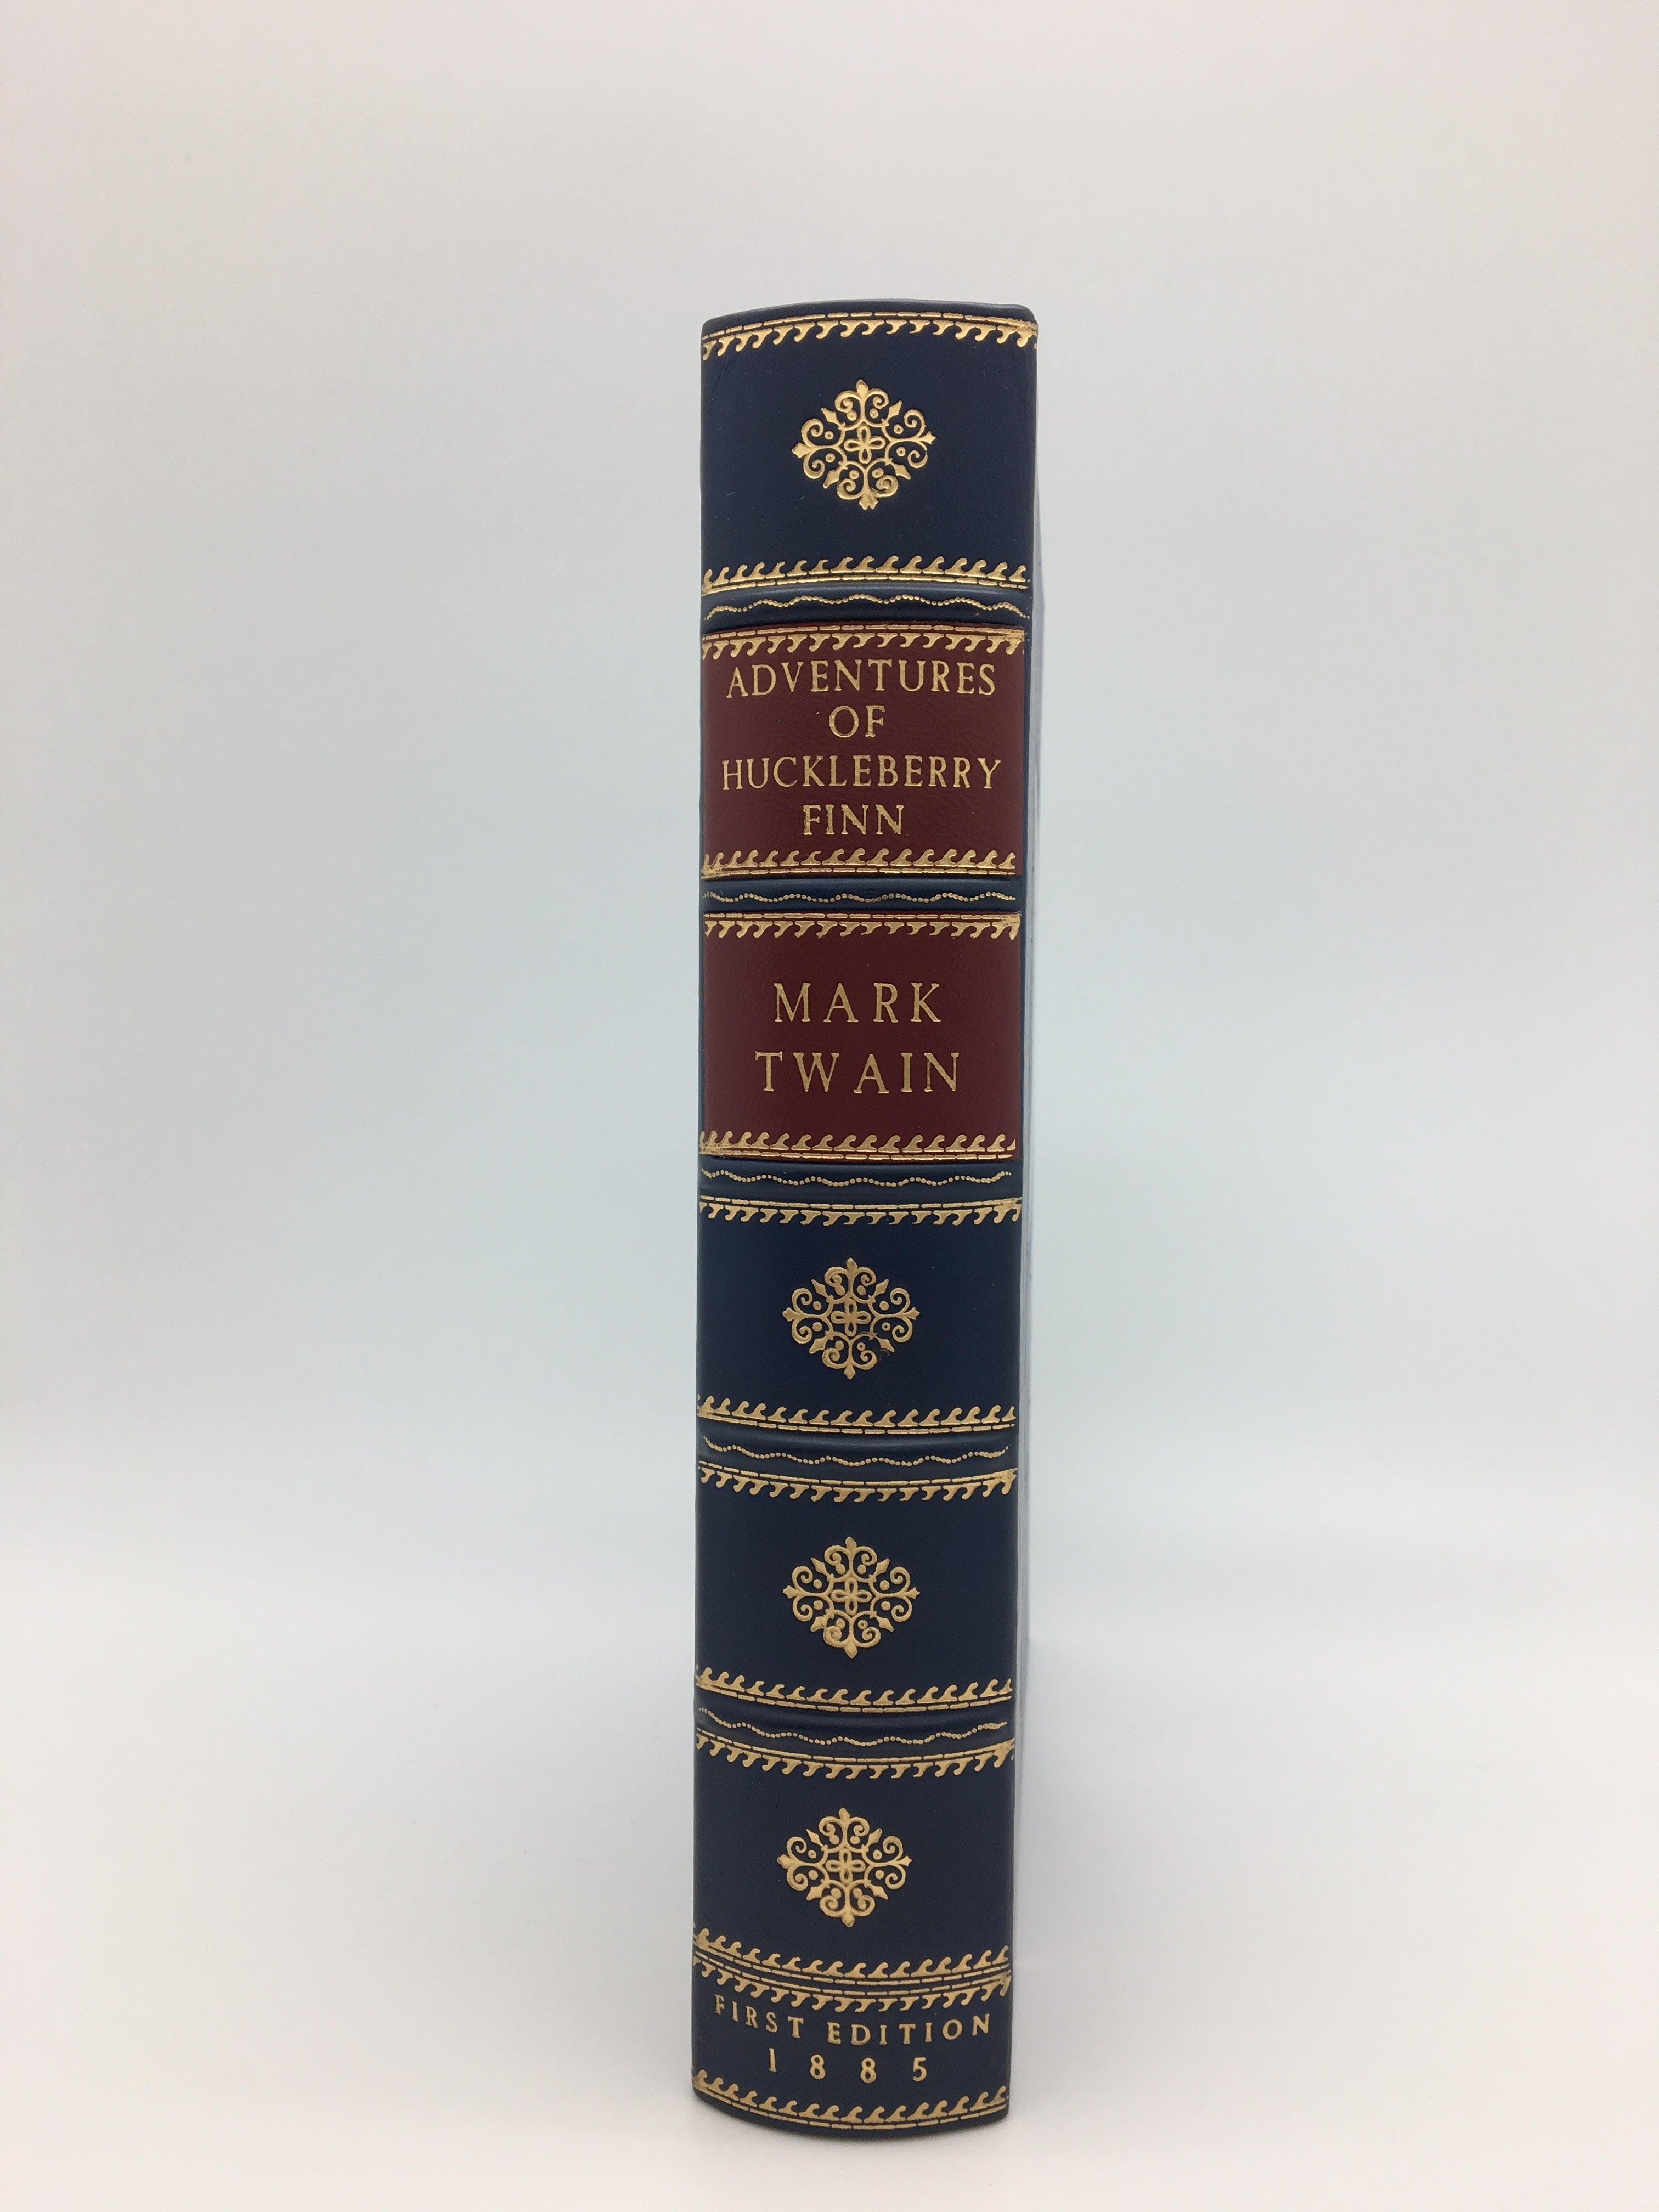 Adventures of Huckleberry Finn by Mark Twain, First Edition, First Printing in Rare Original Blue Cloth Binding, 1885